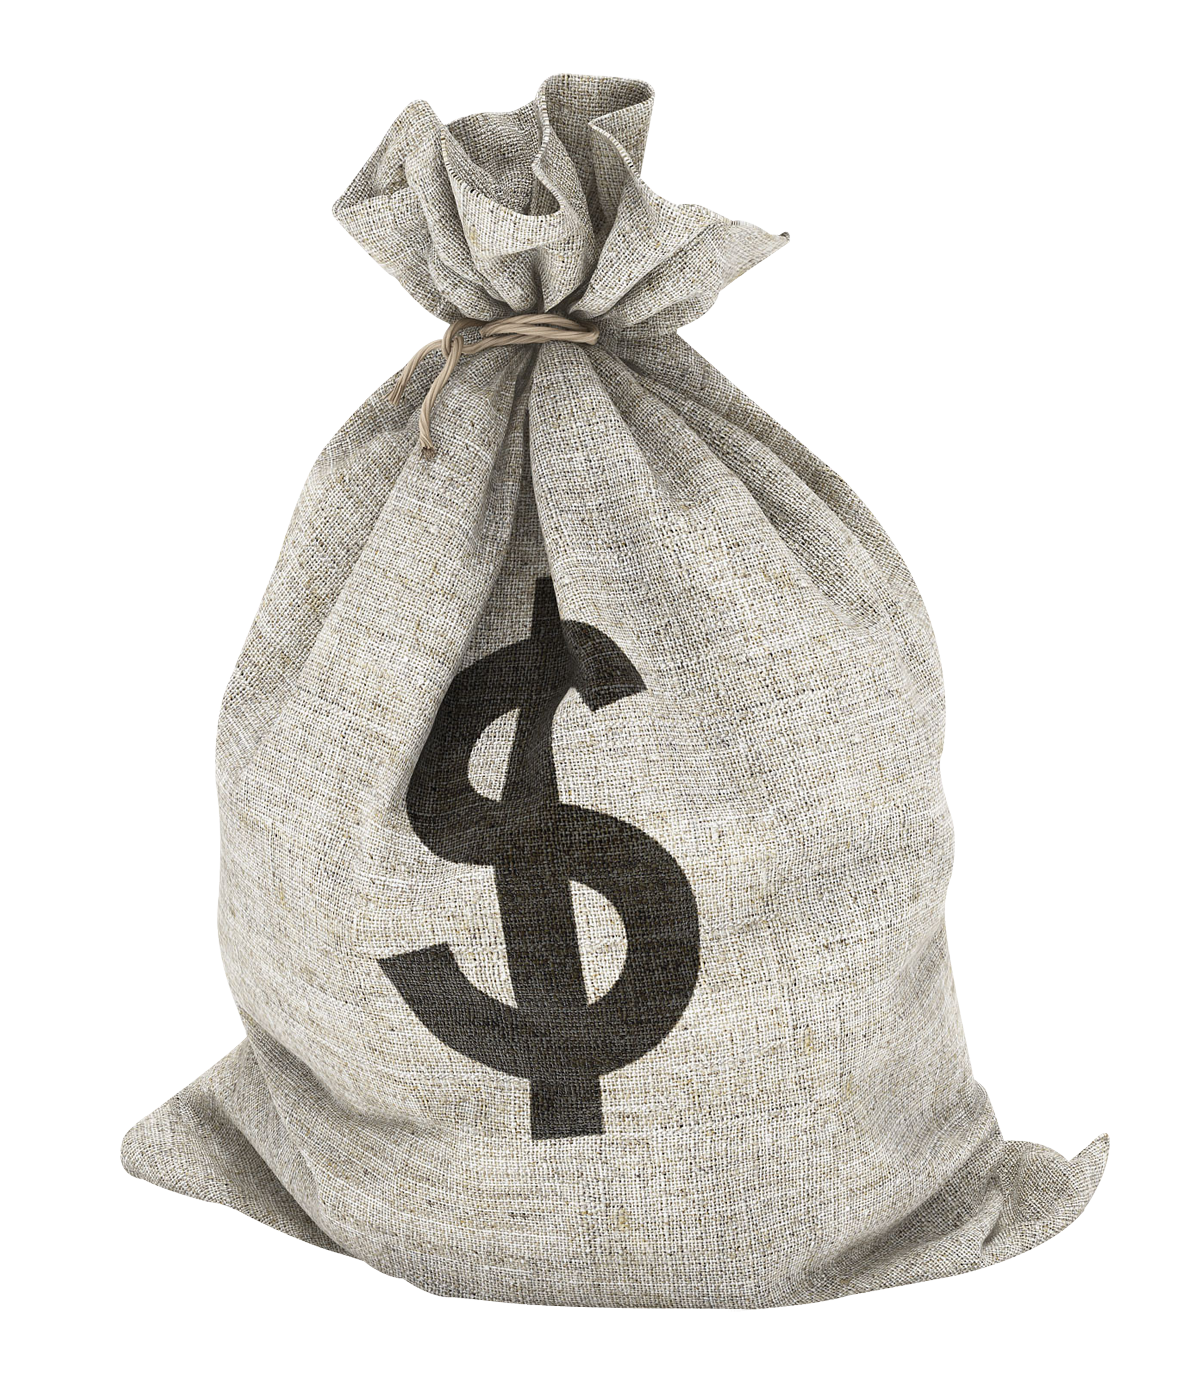 Cash money bag free clipart picture black and white download Money Bag PNG Image - PurePNG | Free transparent CC0 PNG Image Library picture black and white download